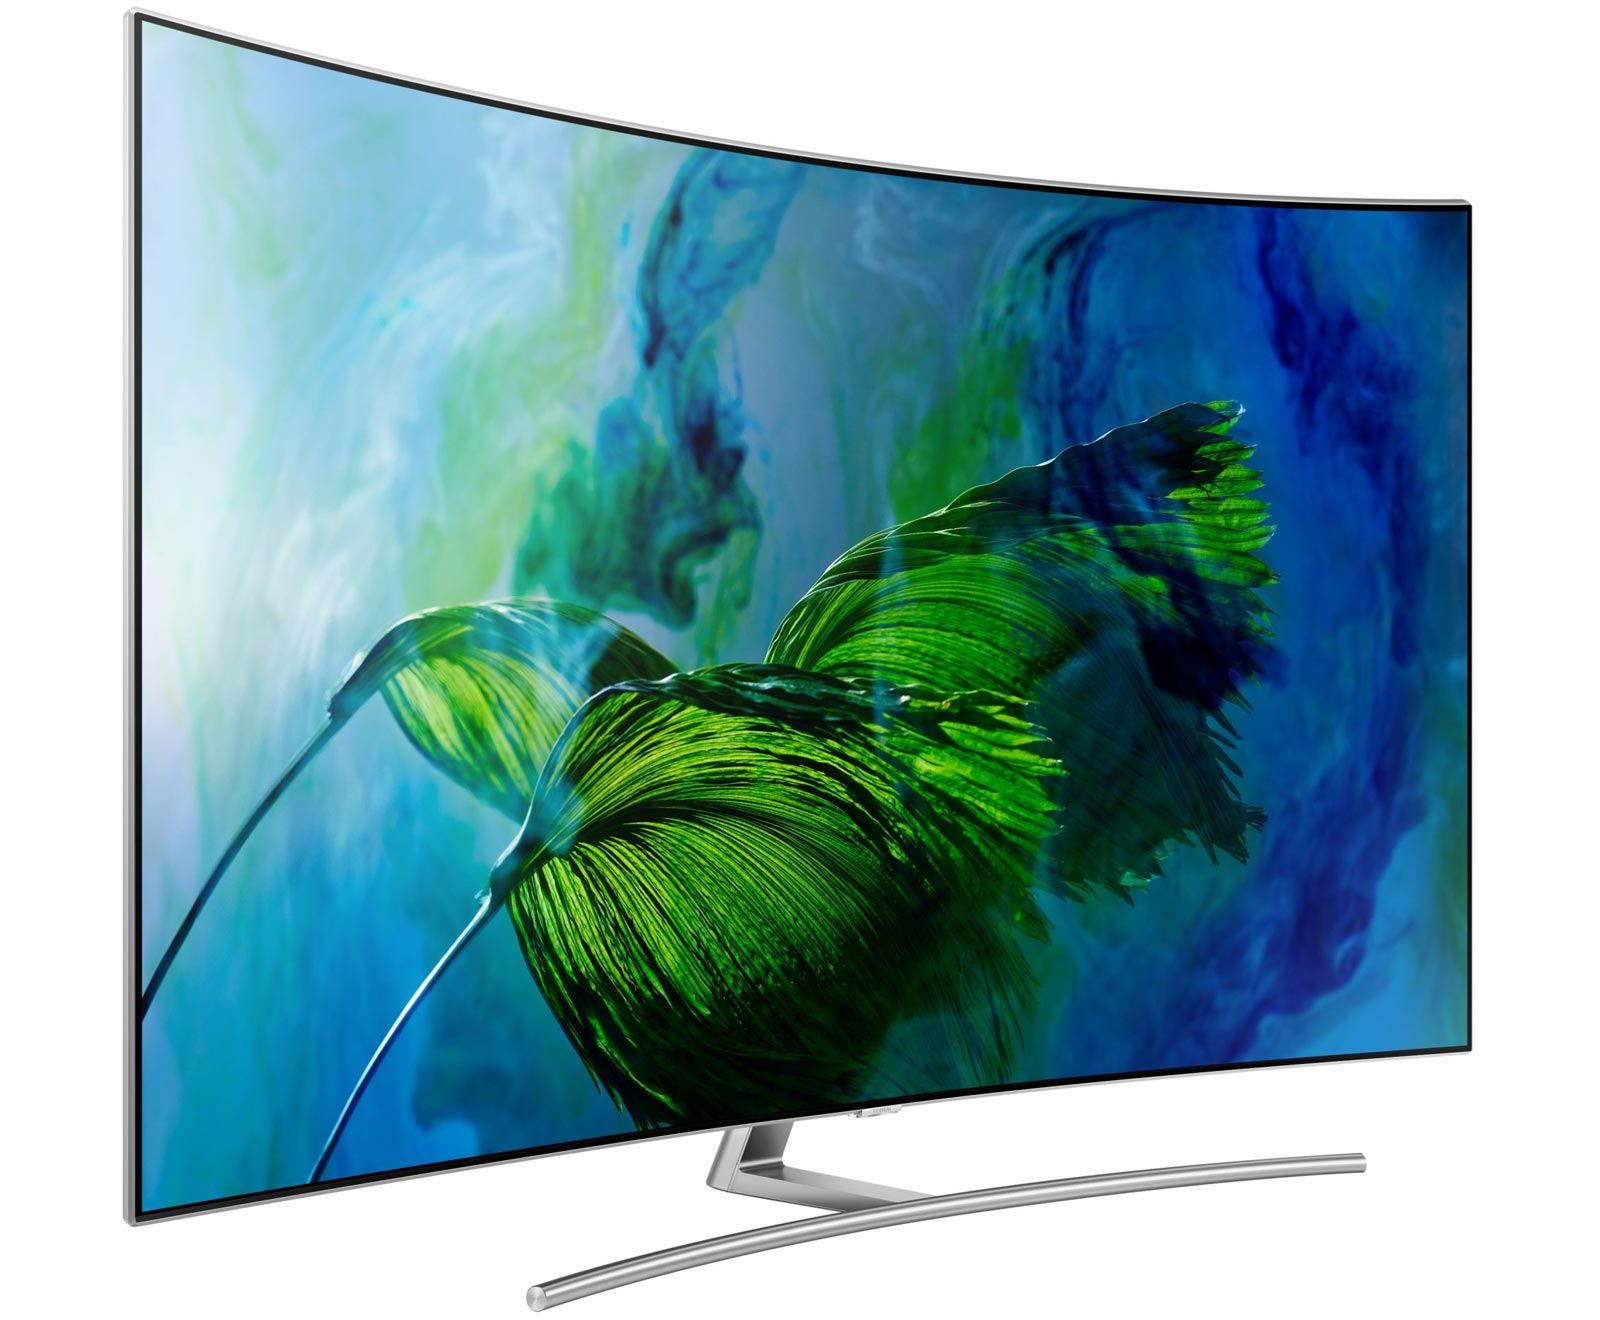 Samsung 2017 TV line-up - full overview with prices